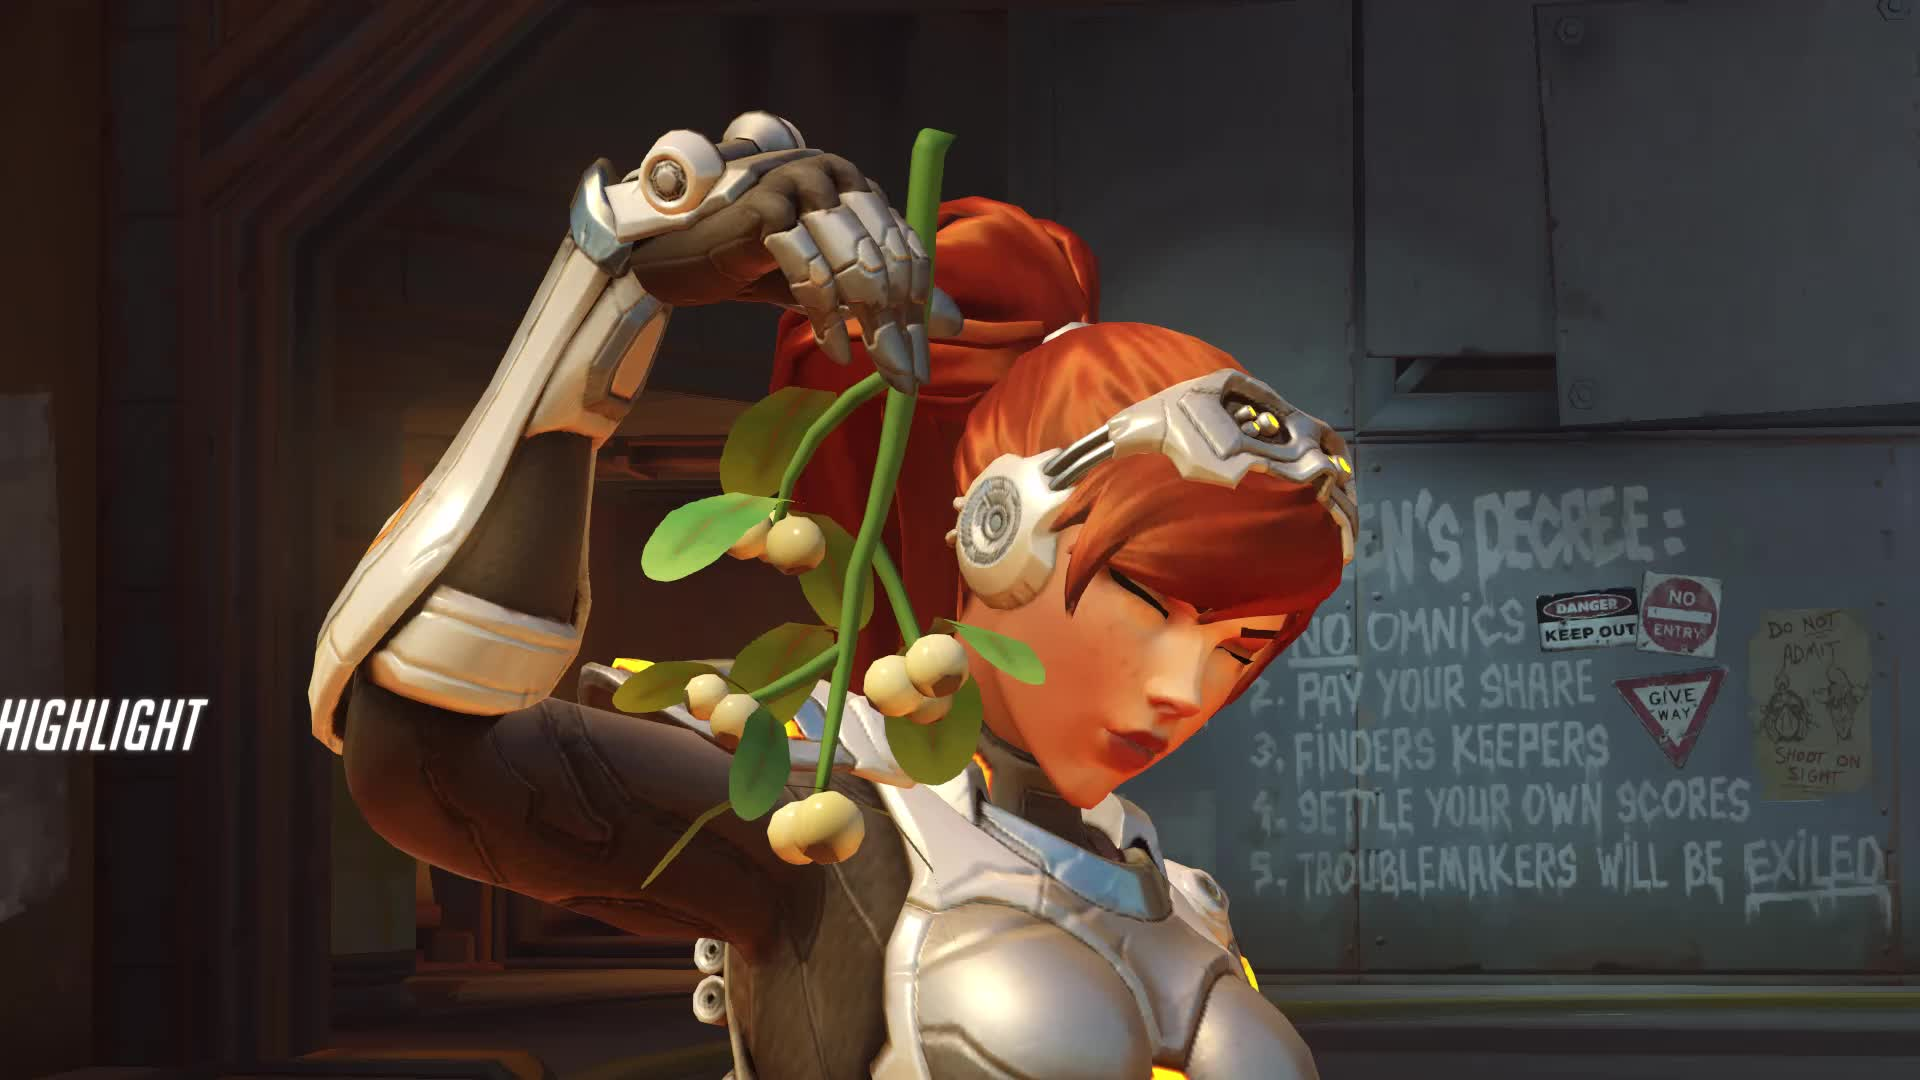 highlight, overwatch, widowmaker, whatisthis 19-05-30 04-02-59 GIFs